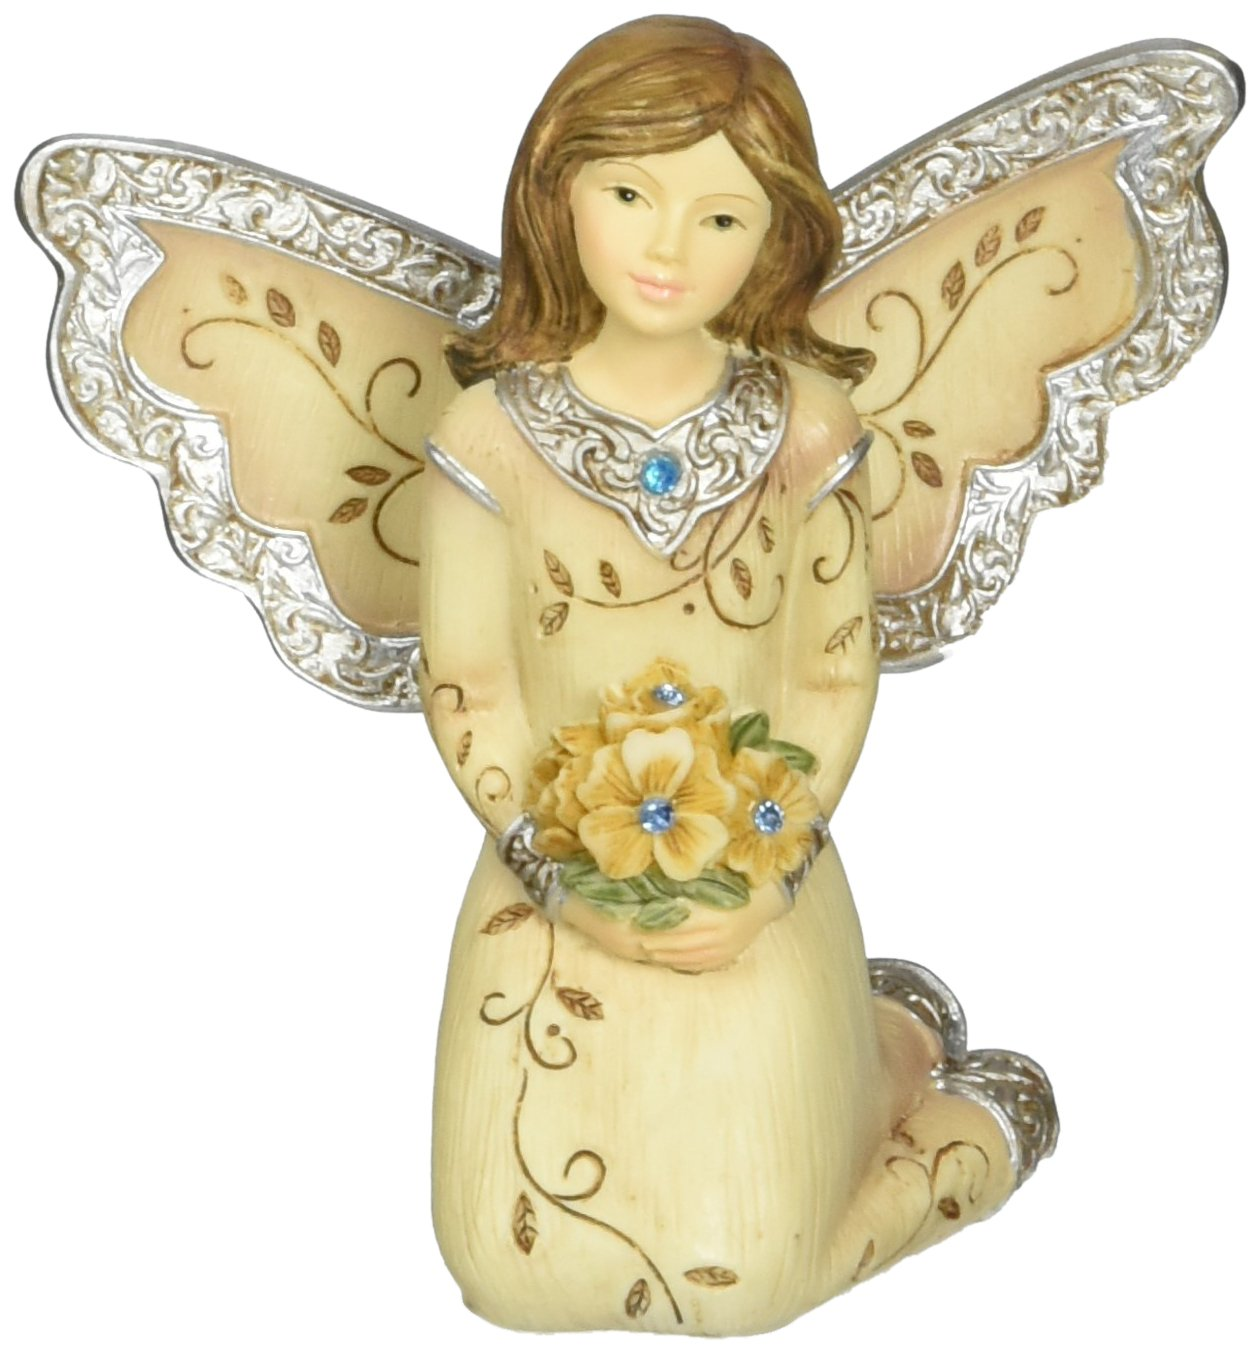 Elements March Monthly Angel Figurine, Includes Aquamarine Birthstone, 3-Inch